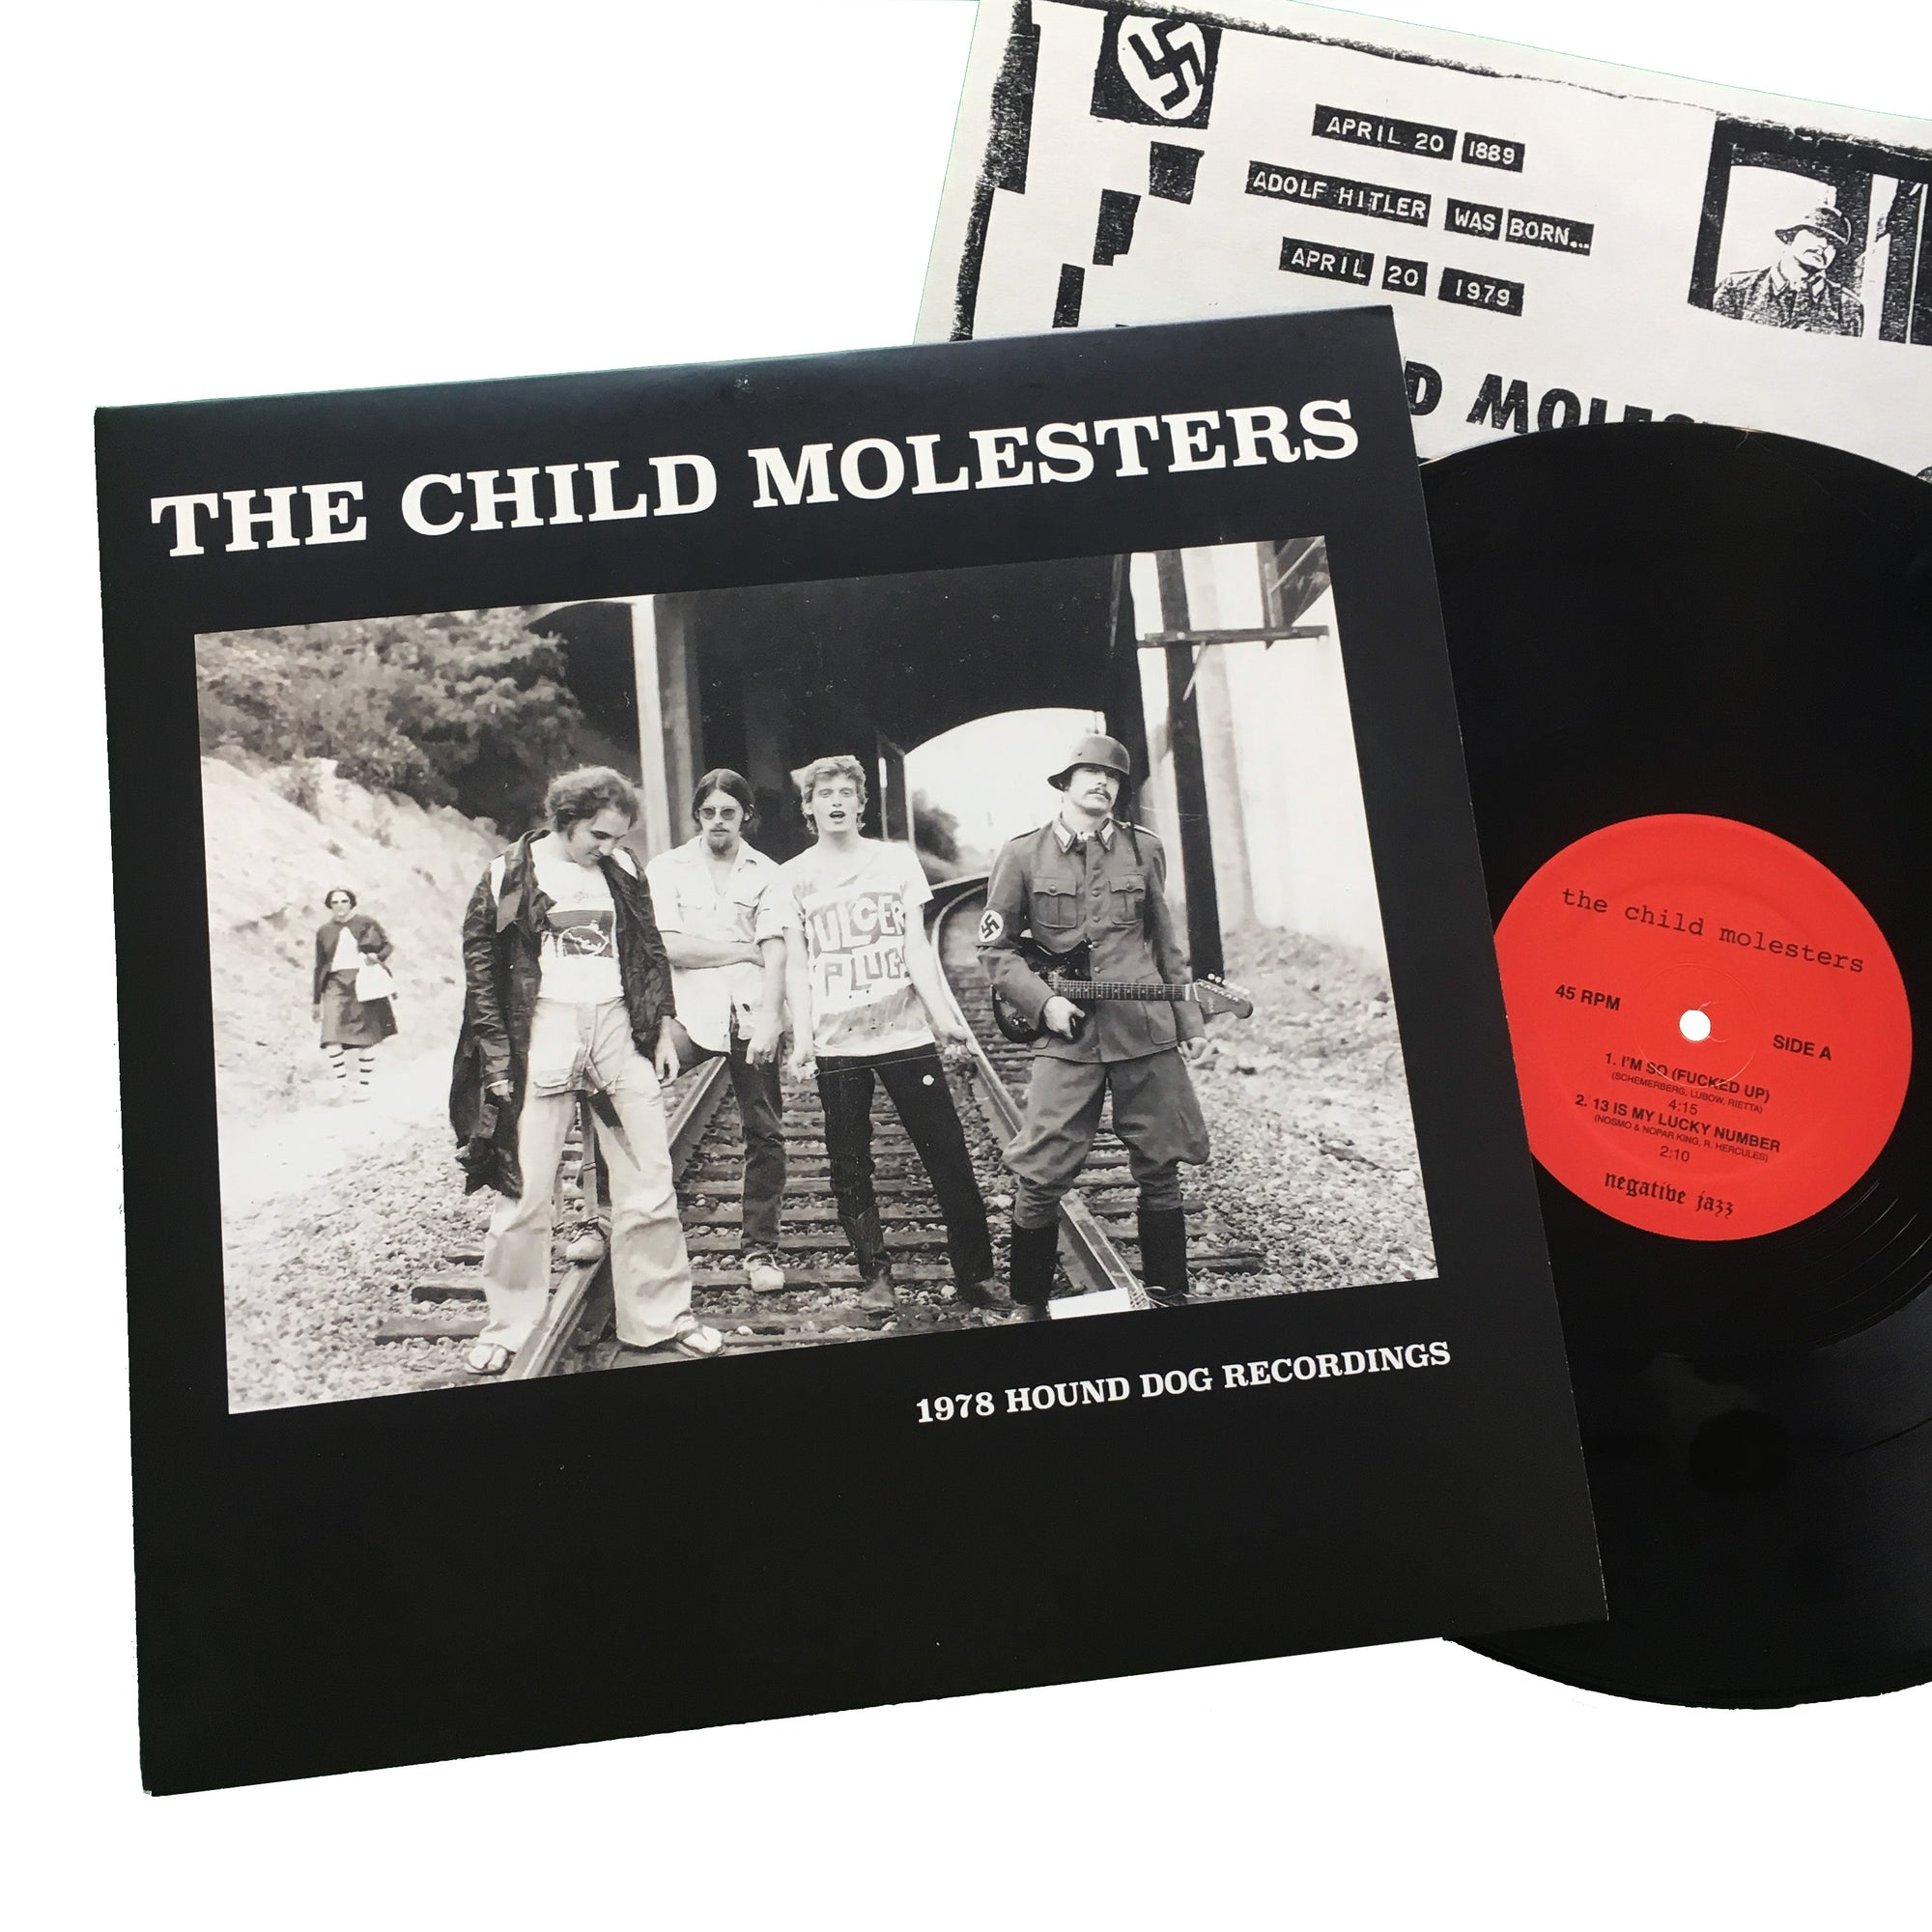 CHILD MOLESTERS, THE